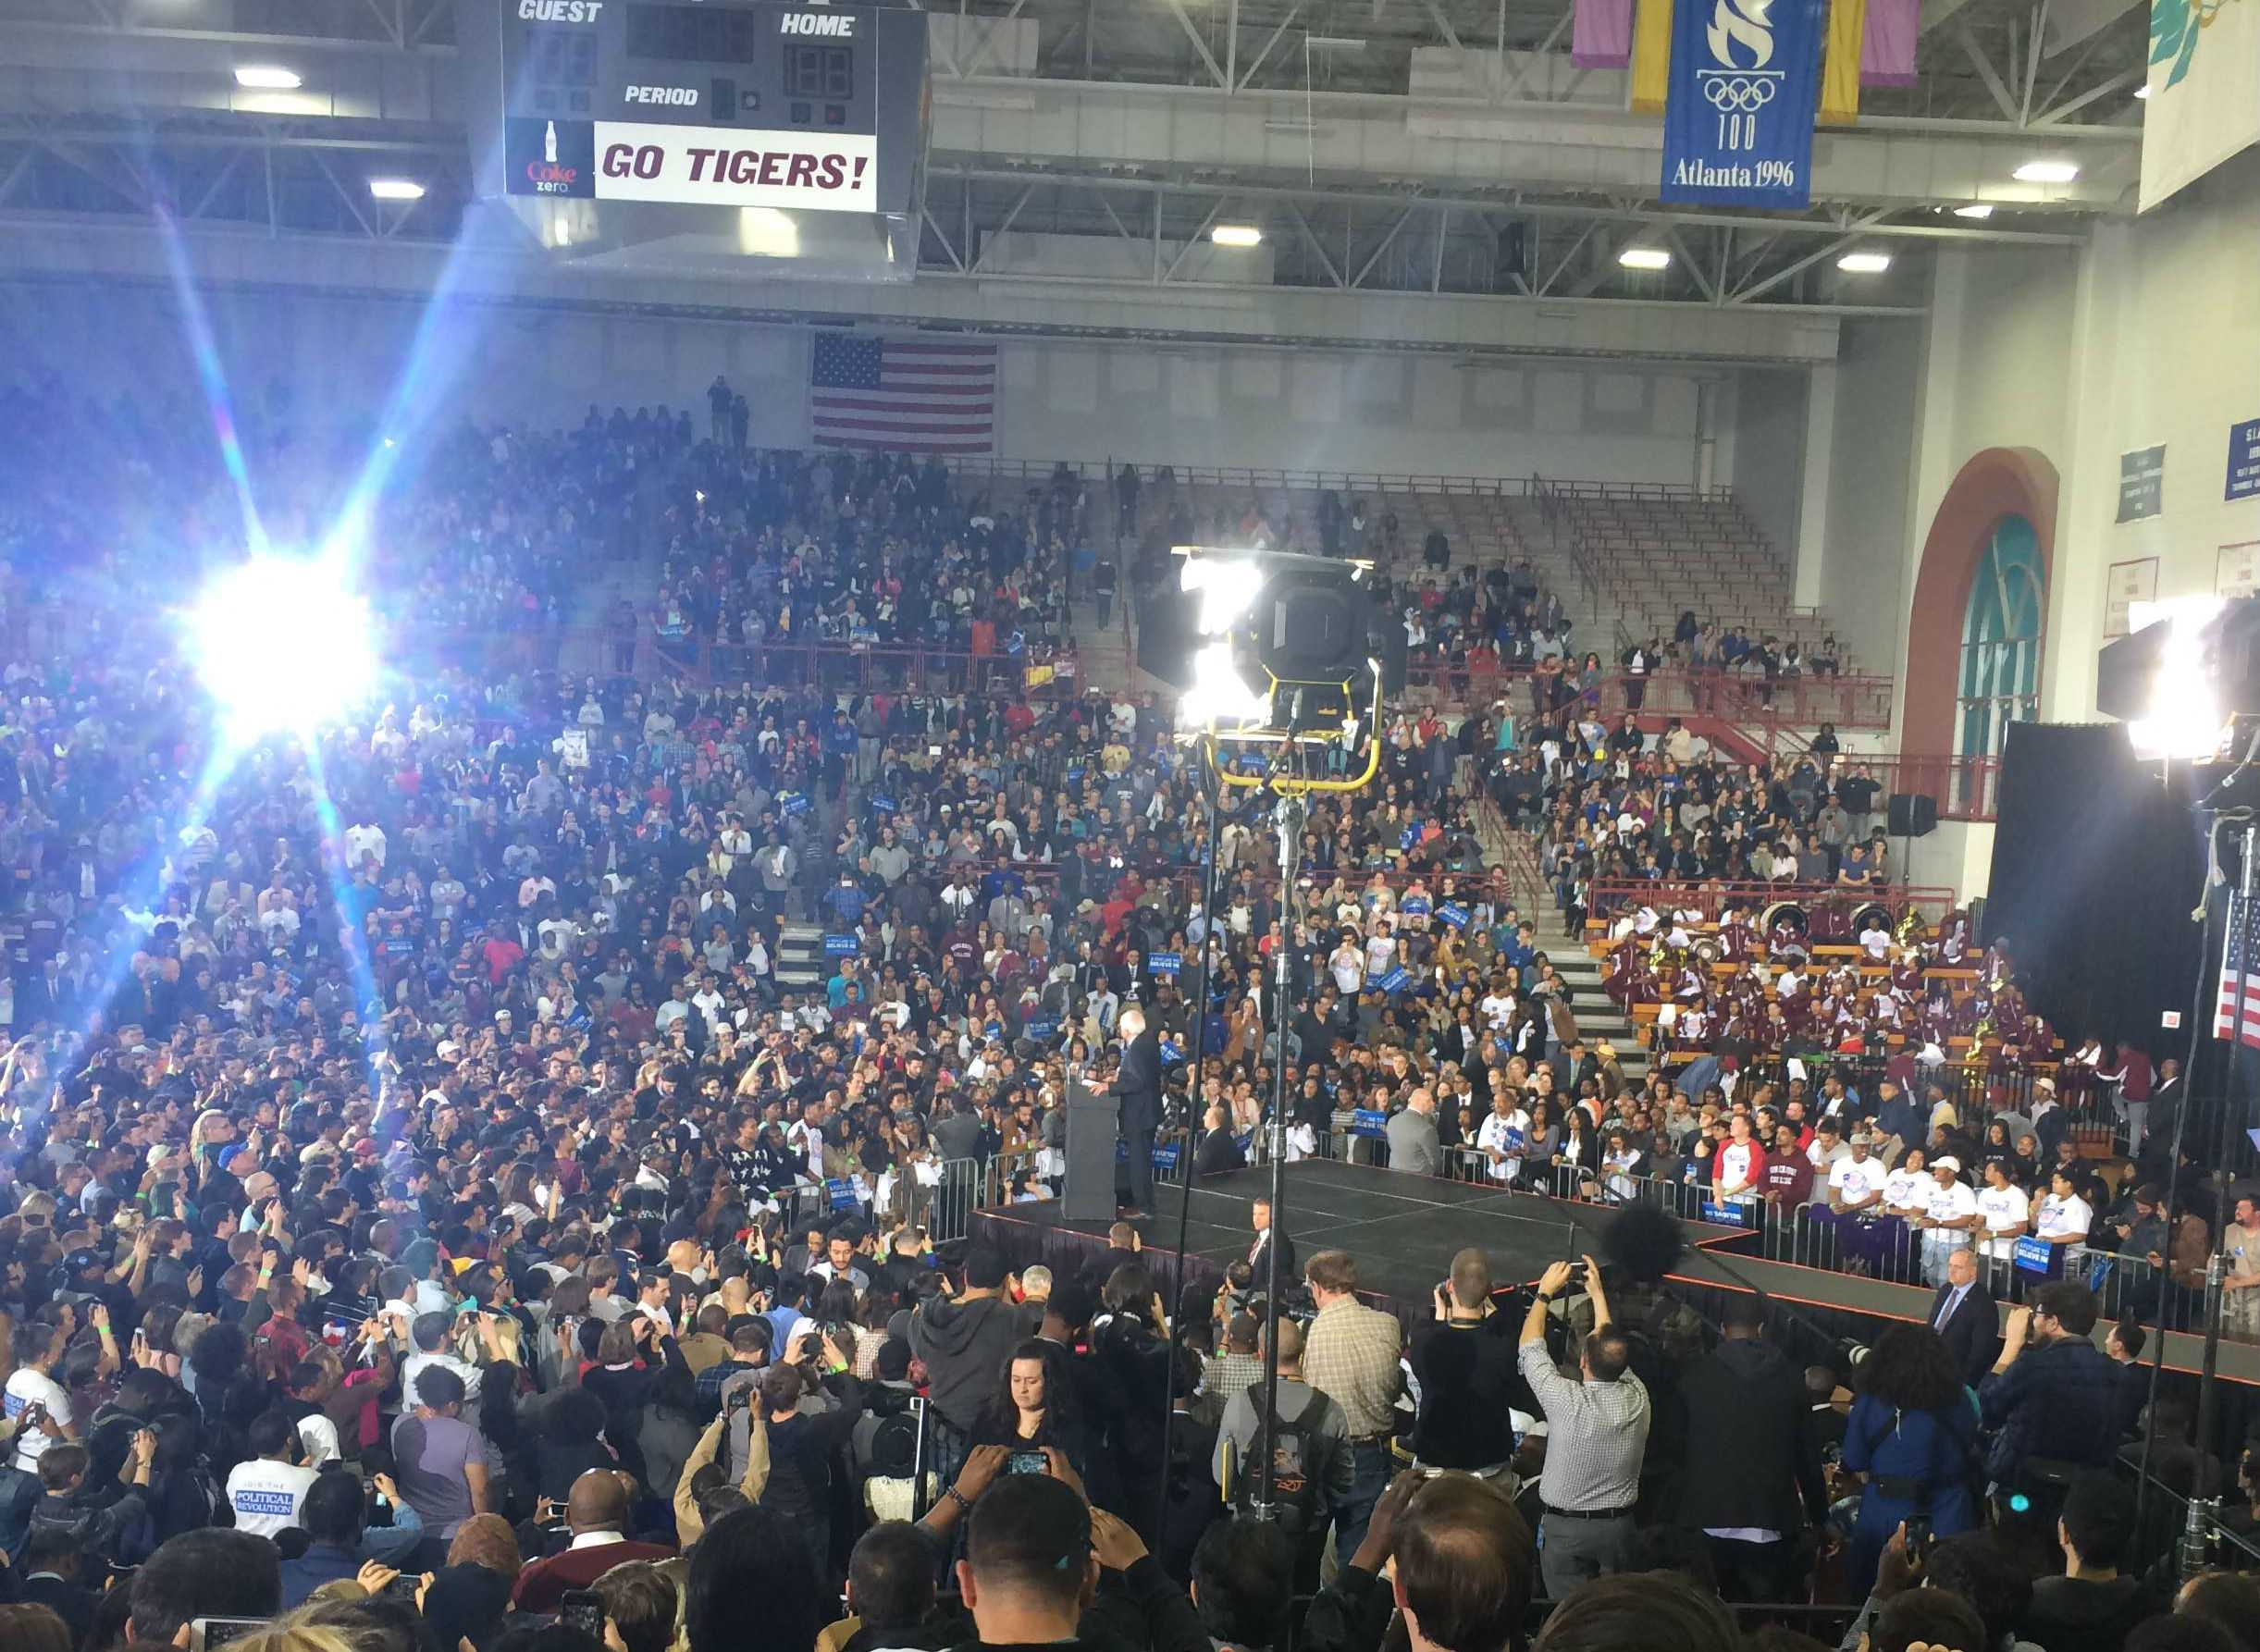 The view from a Bernie Sanders rally. Courtesy of Asia Mitchell